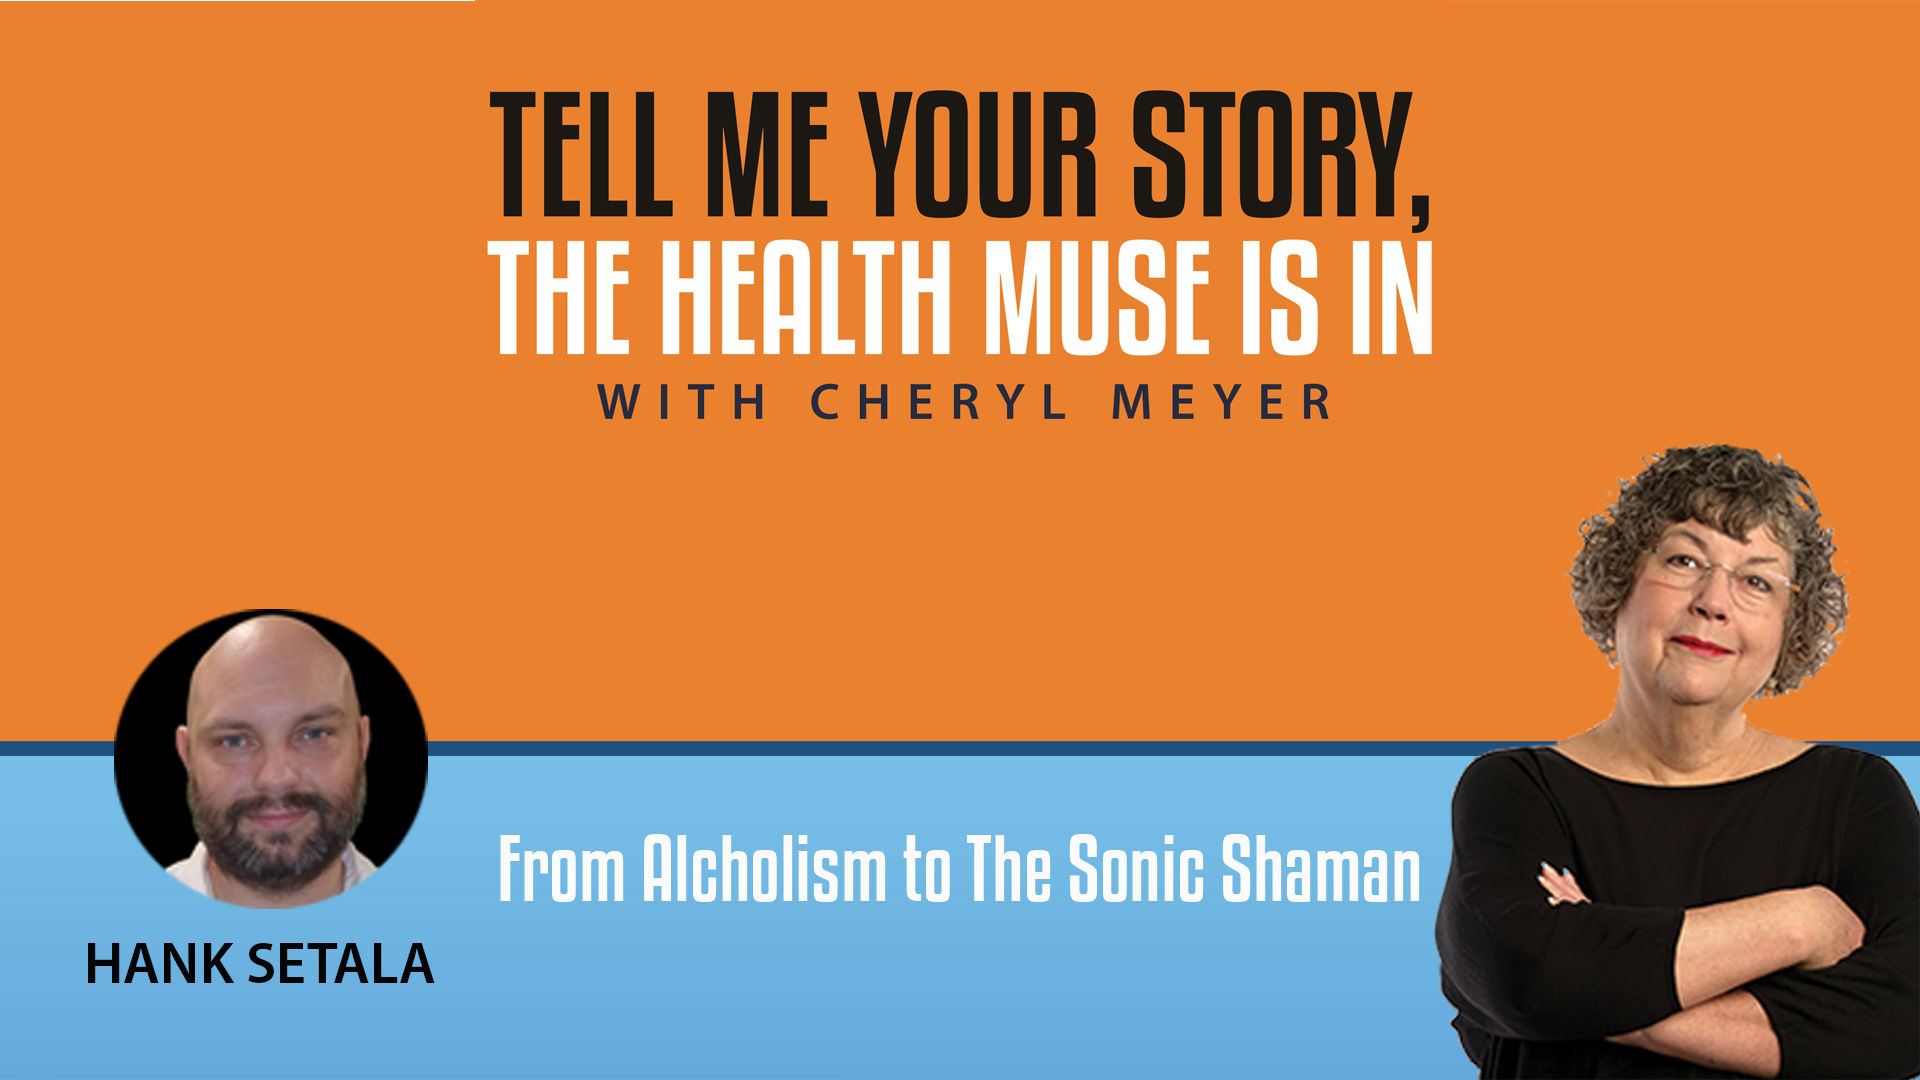 Tell Me Your Story Hank Setala- from Alcoholism to Sonic Shaman